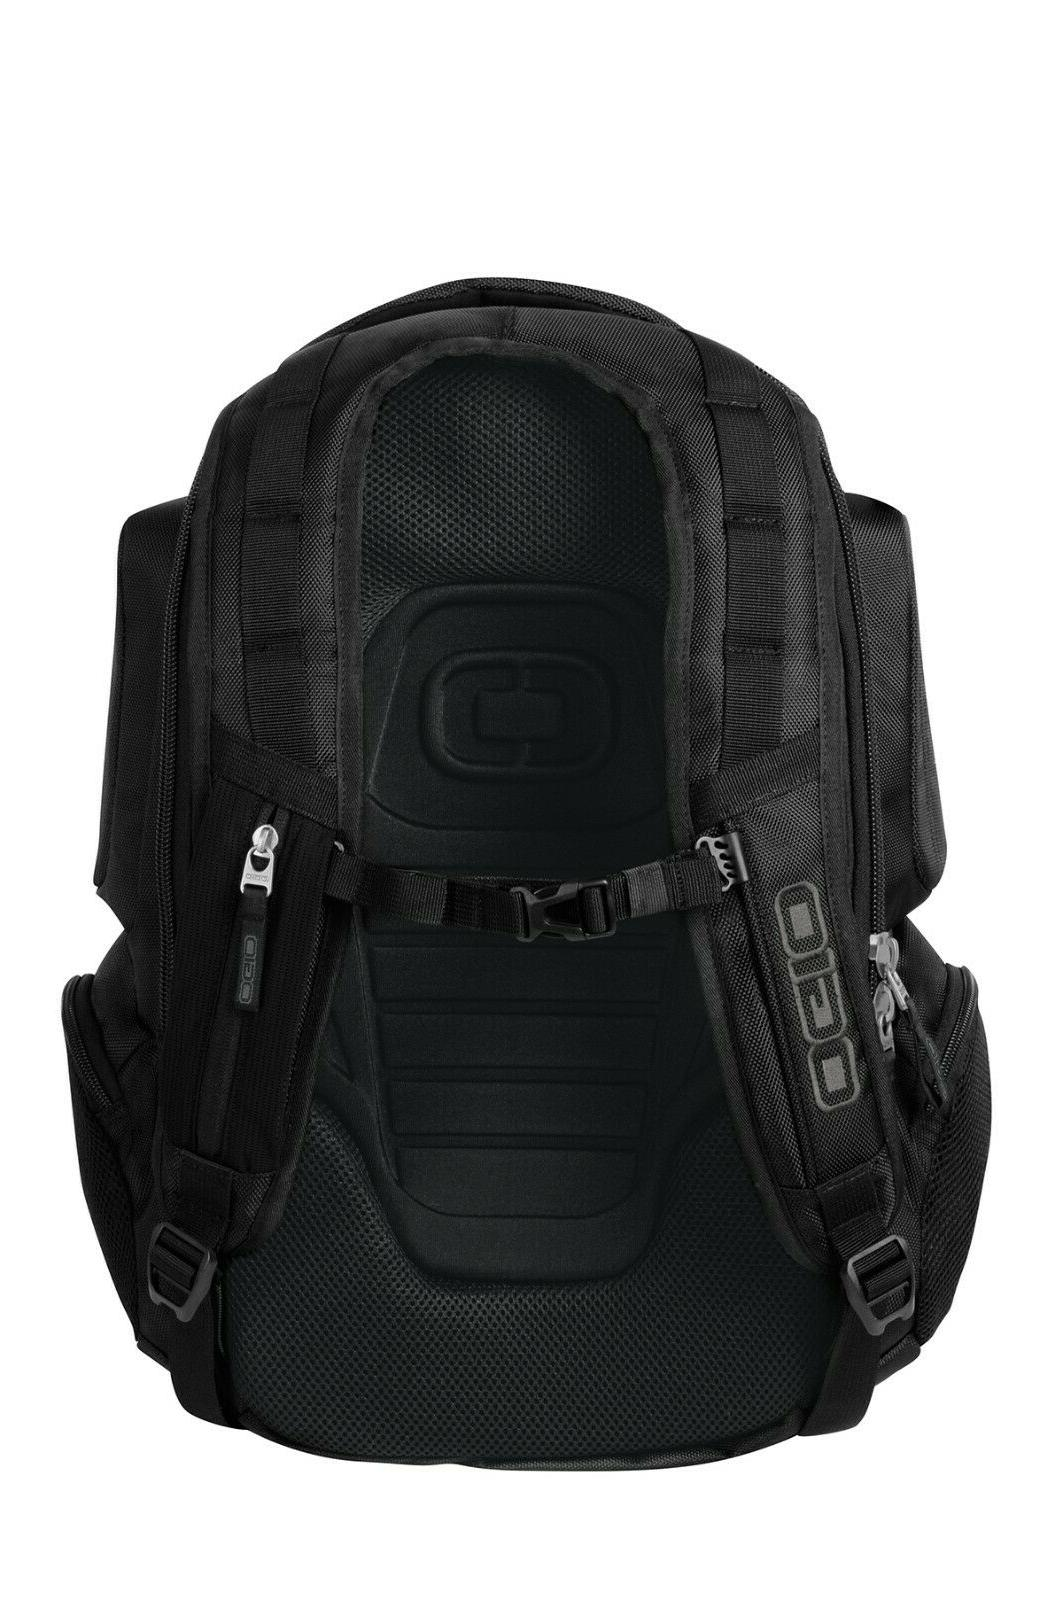 OGIO Stratagem Pack Backpack Black Personalize